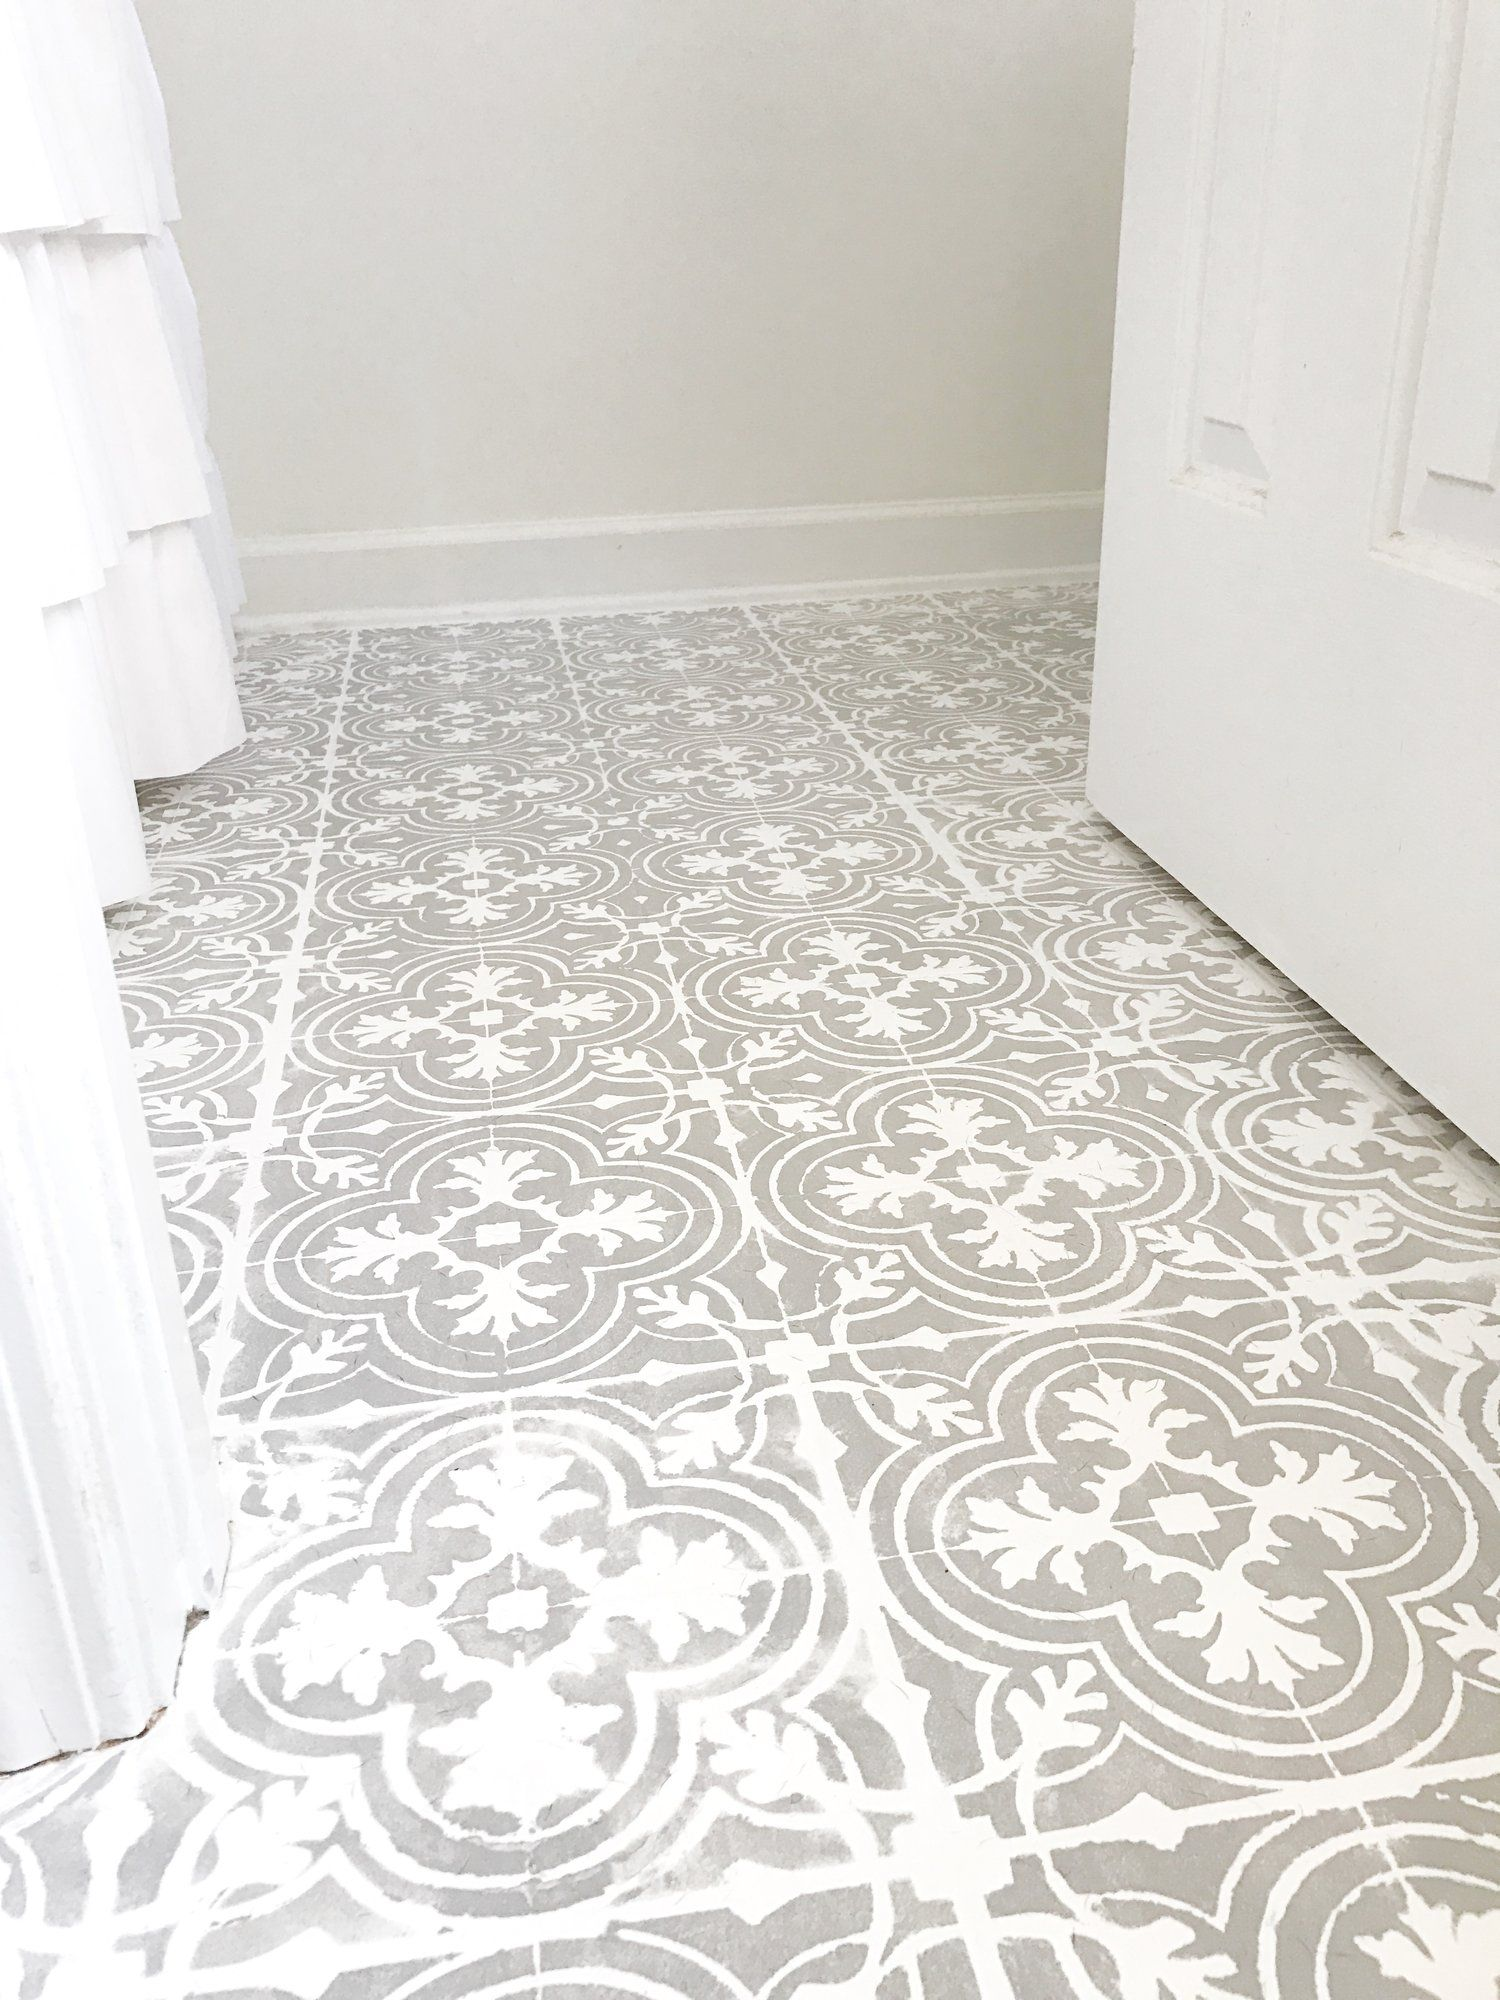 How to Paint Your Linoleum or Tile Floors to Look Like Patterned ...